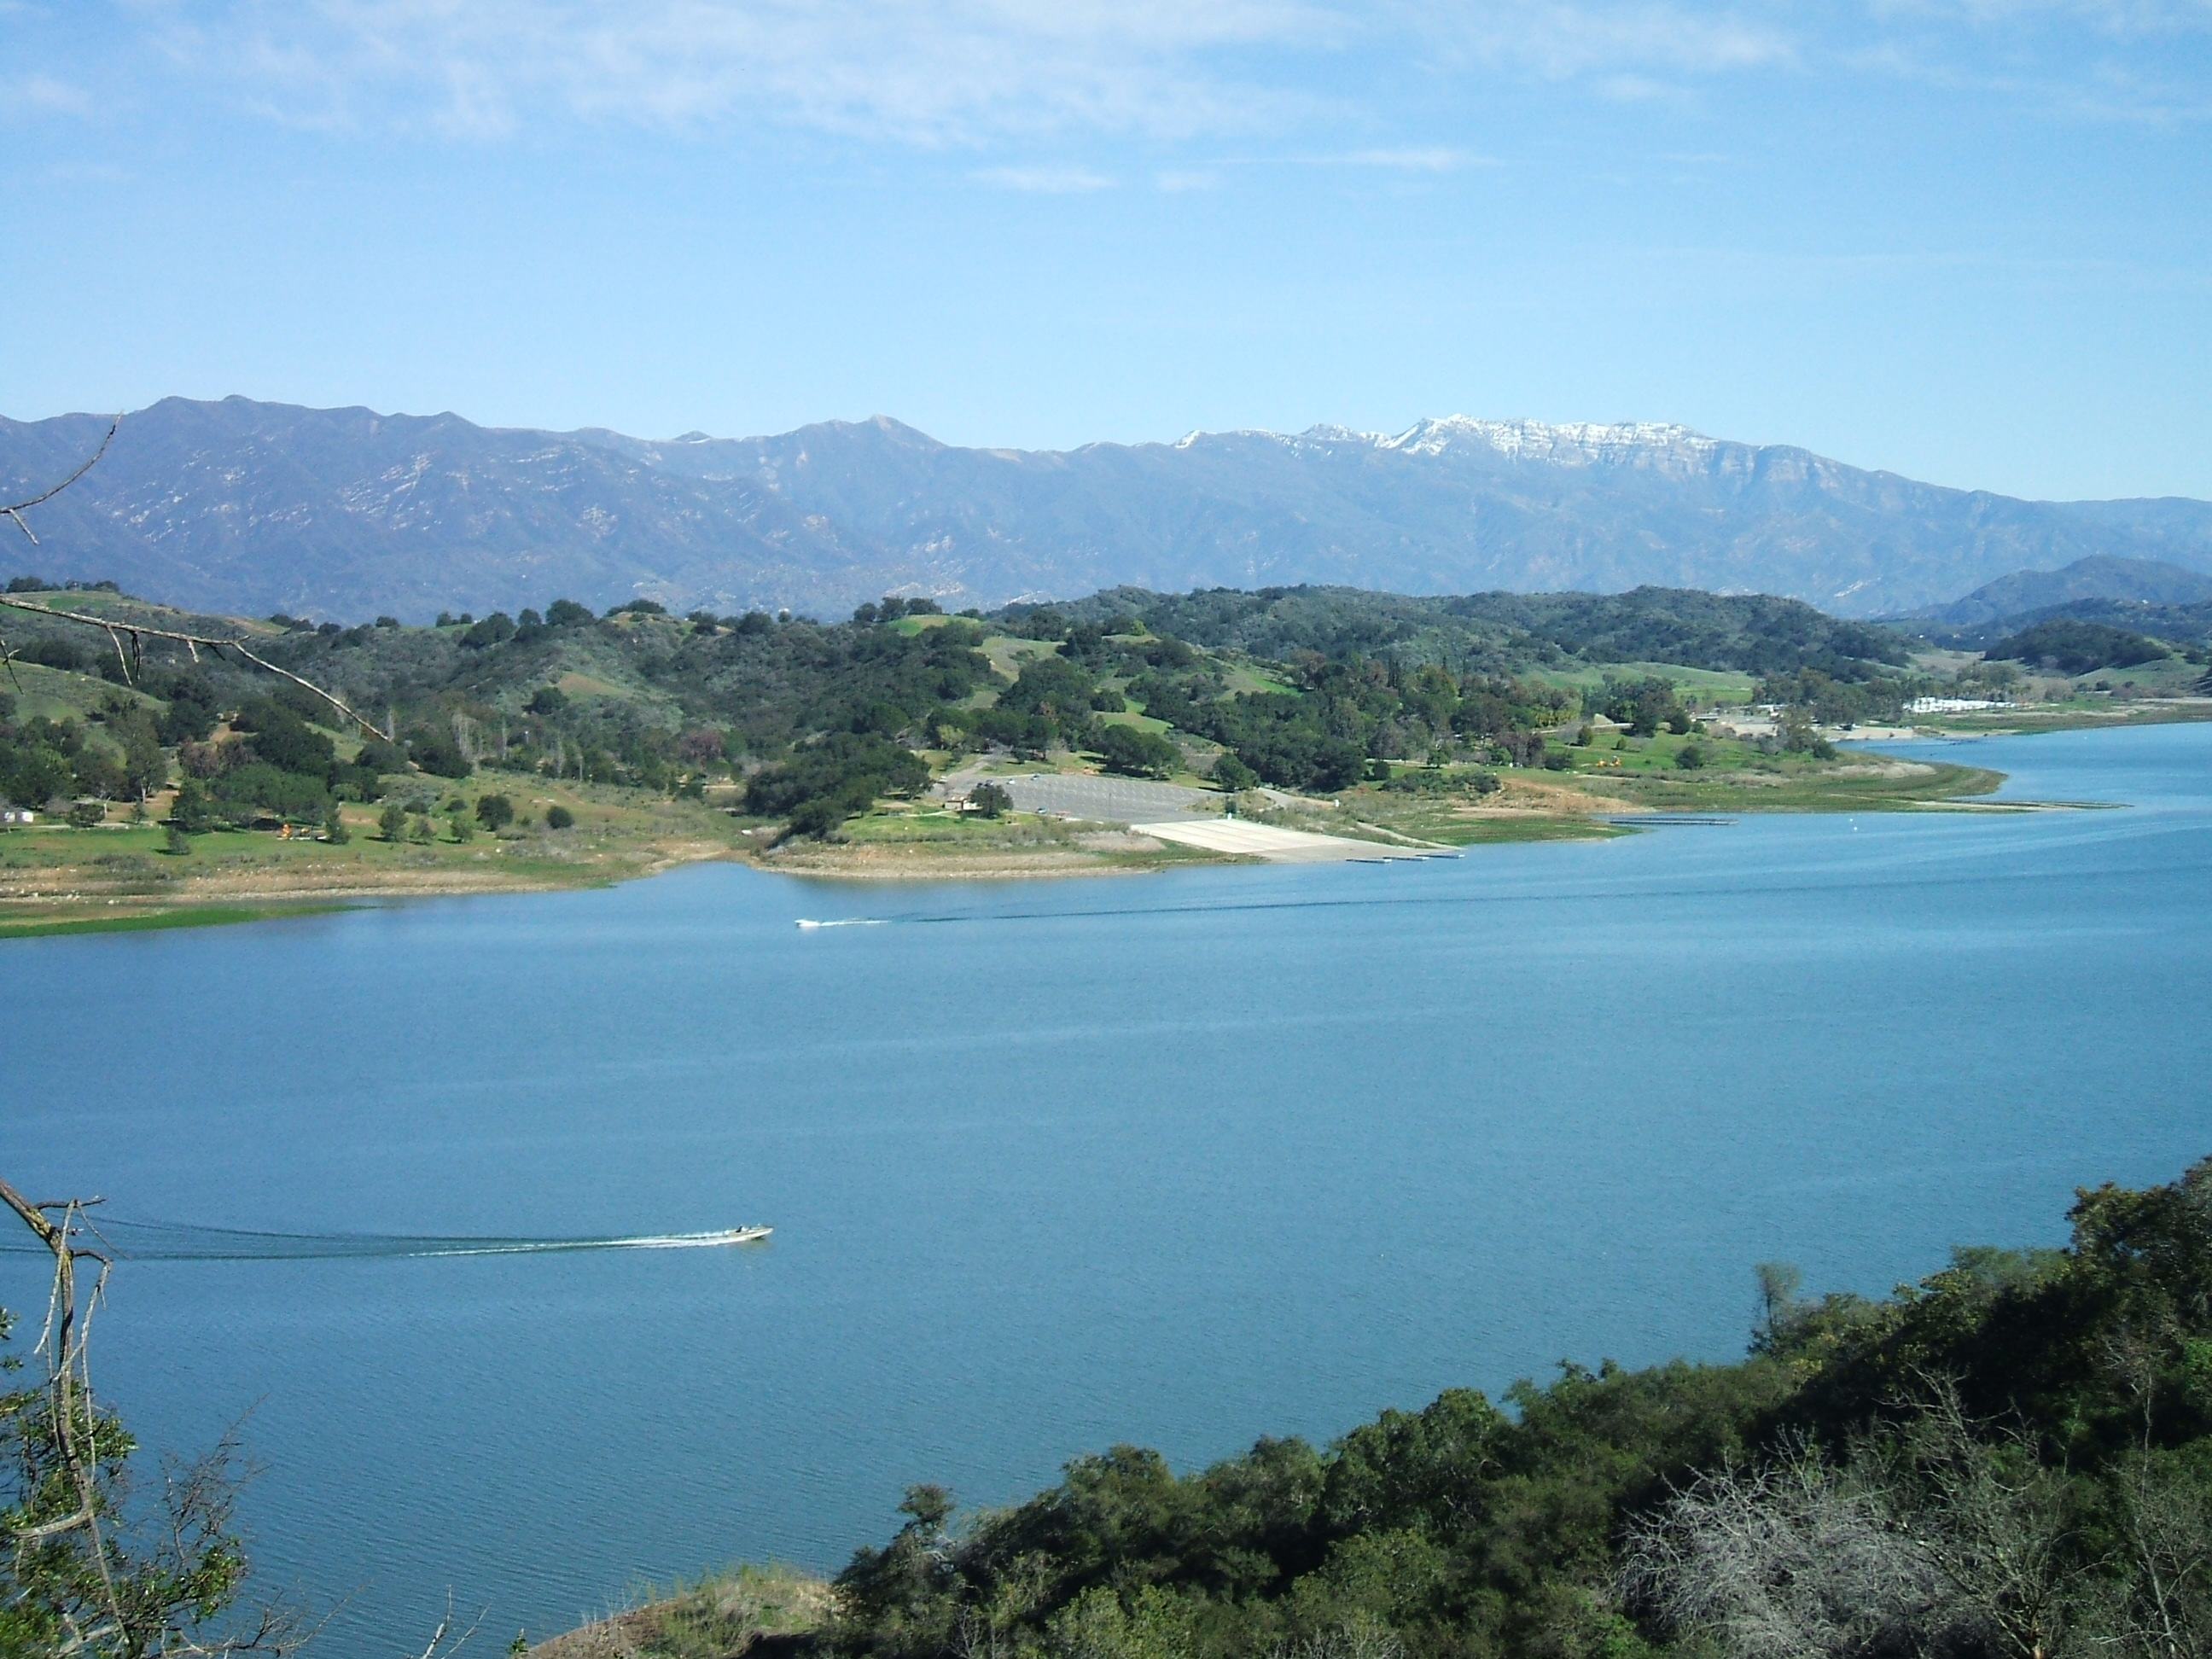 Boating and fishing lake casitas recreation area for Best fishing in california